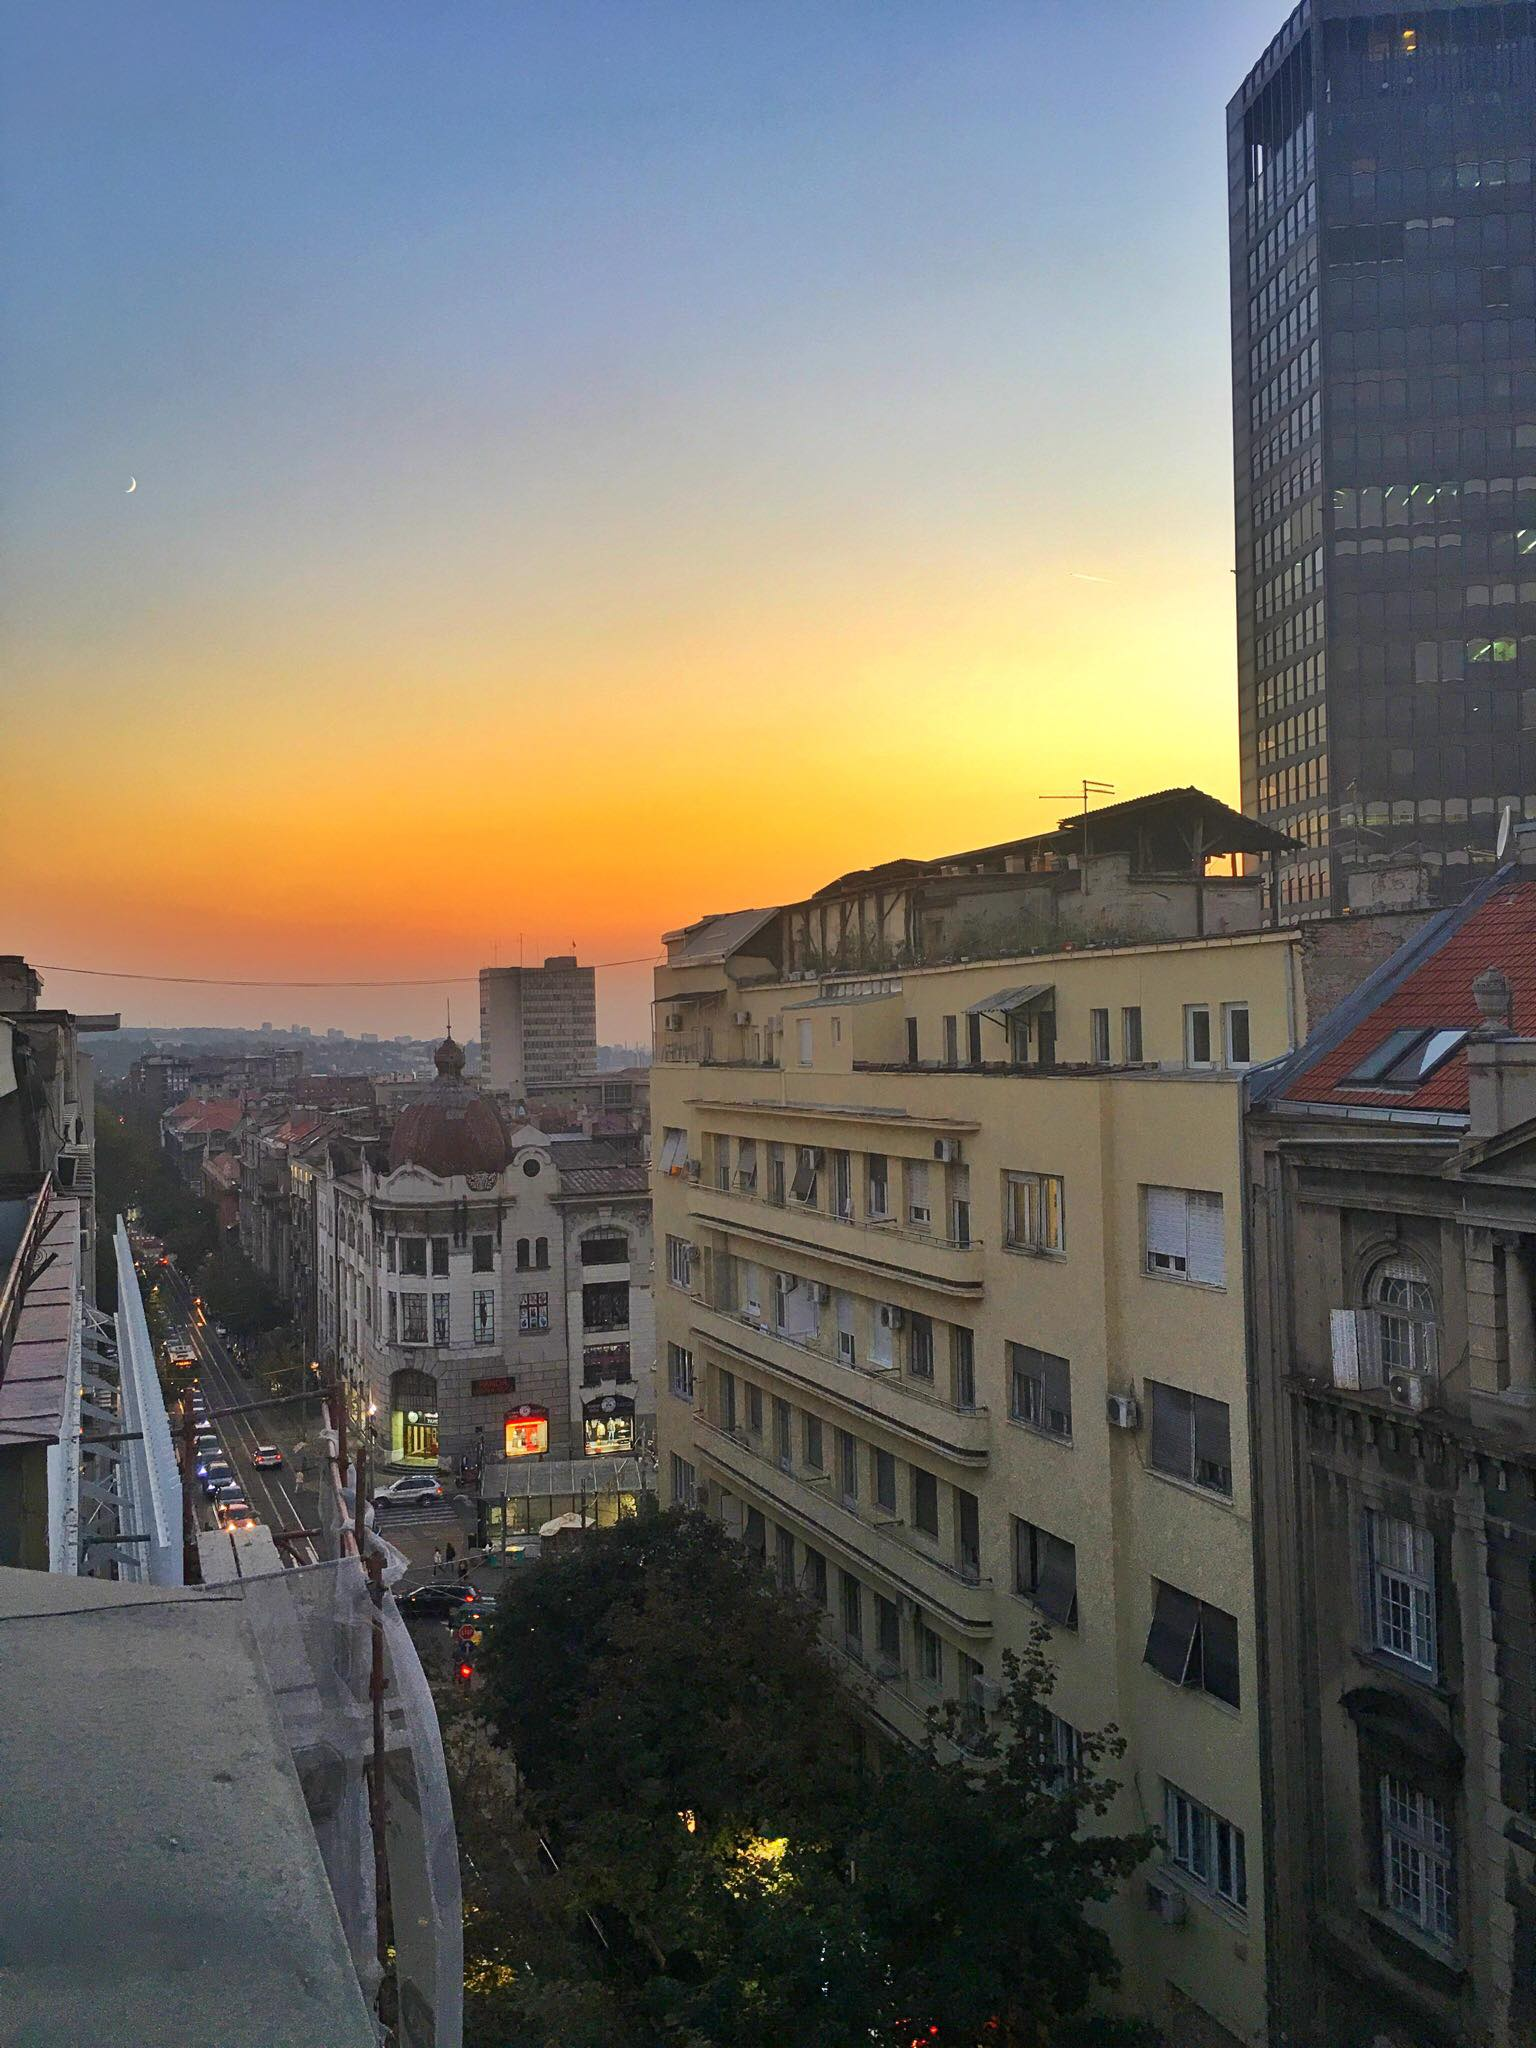 Kach Solo Travels Day 58: Hello from BELGRADE, SERBIA!